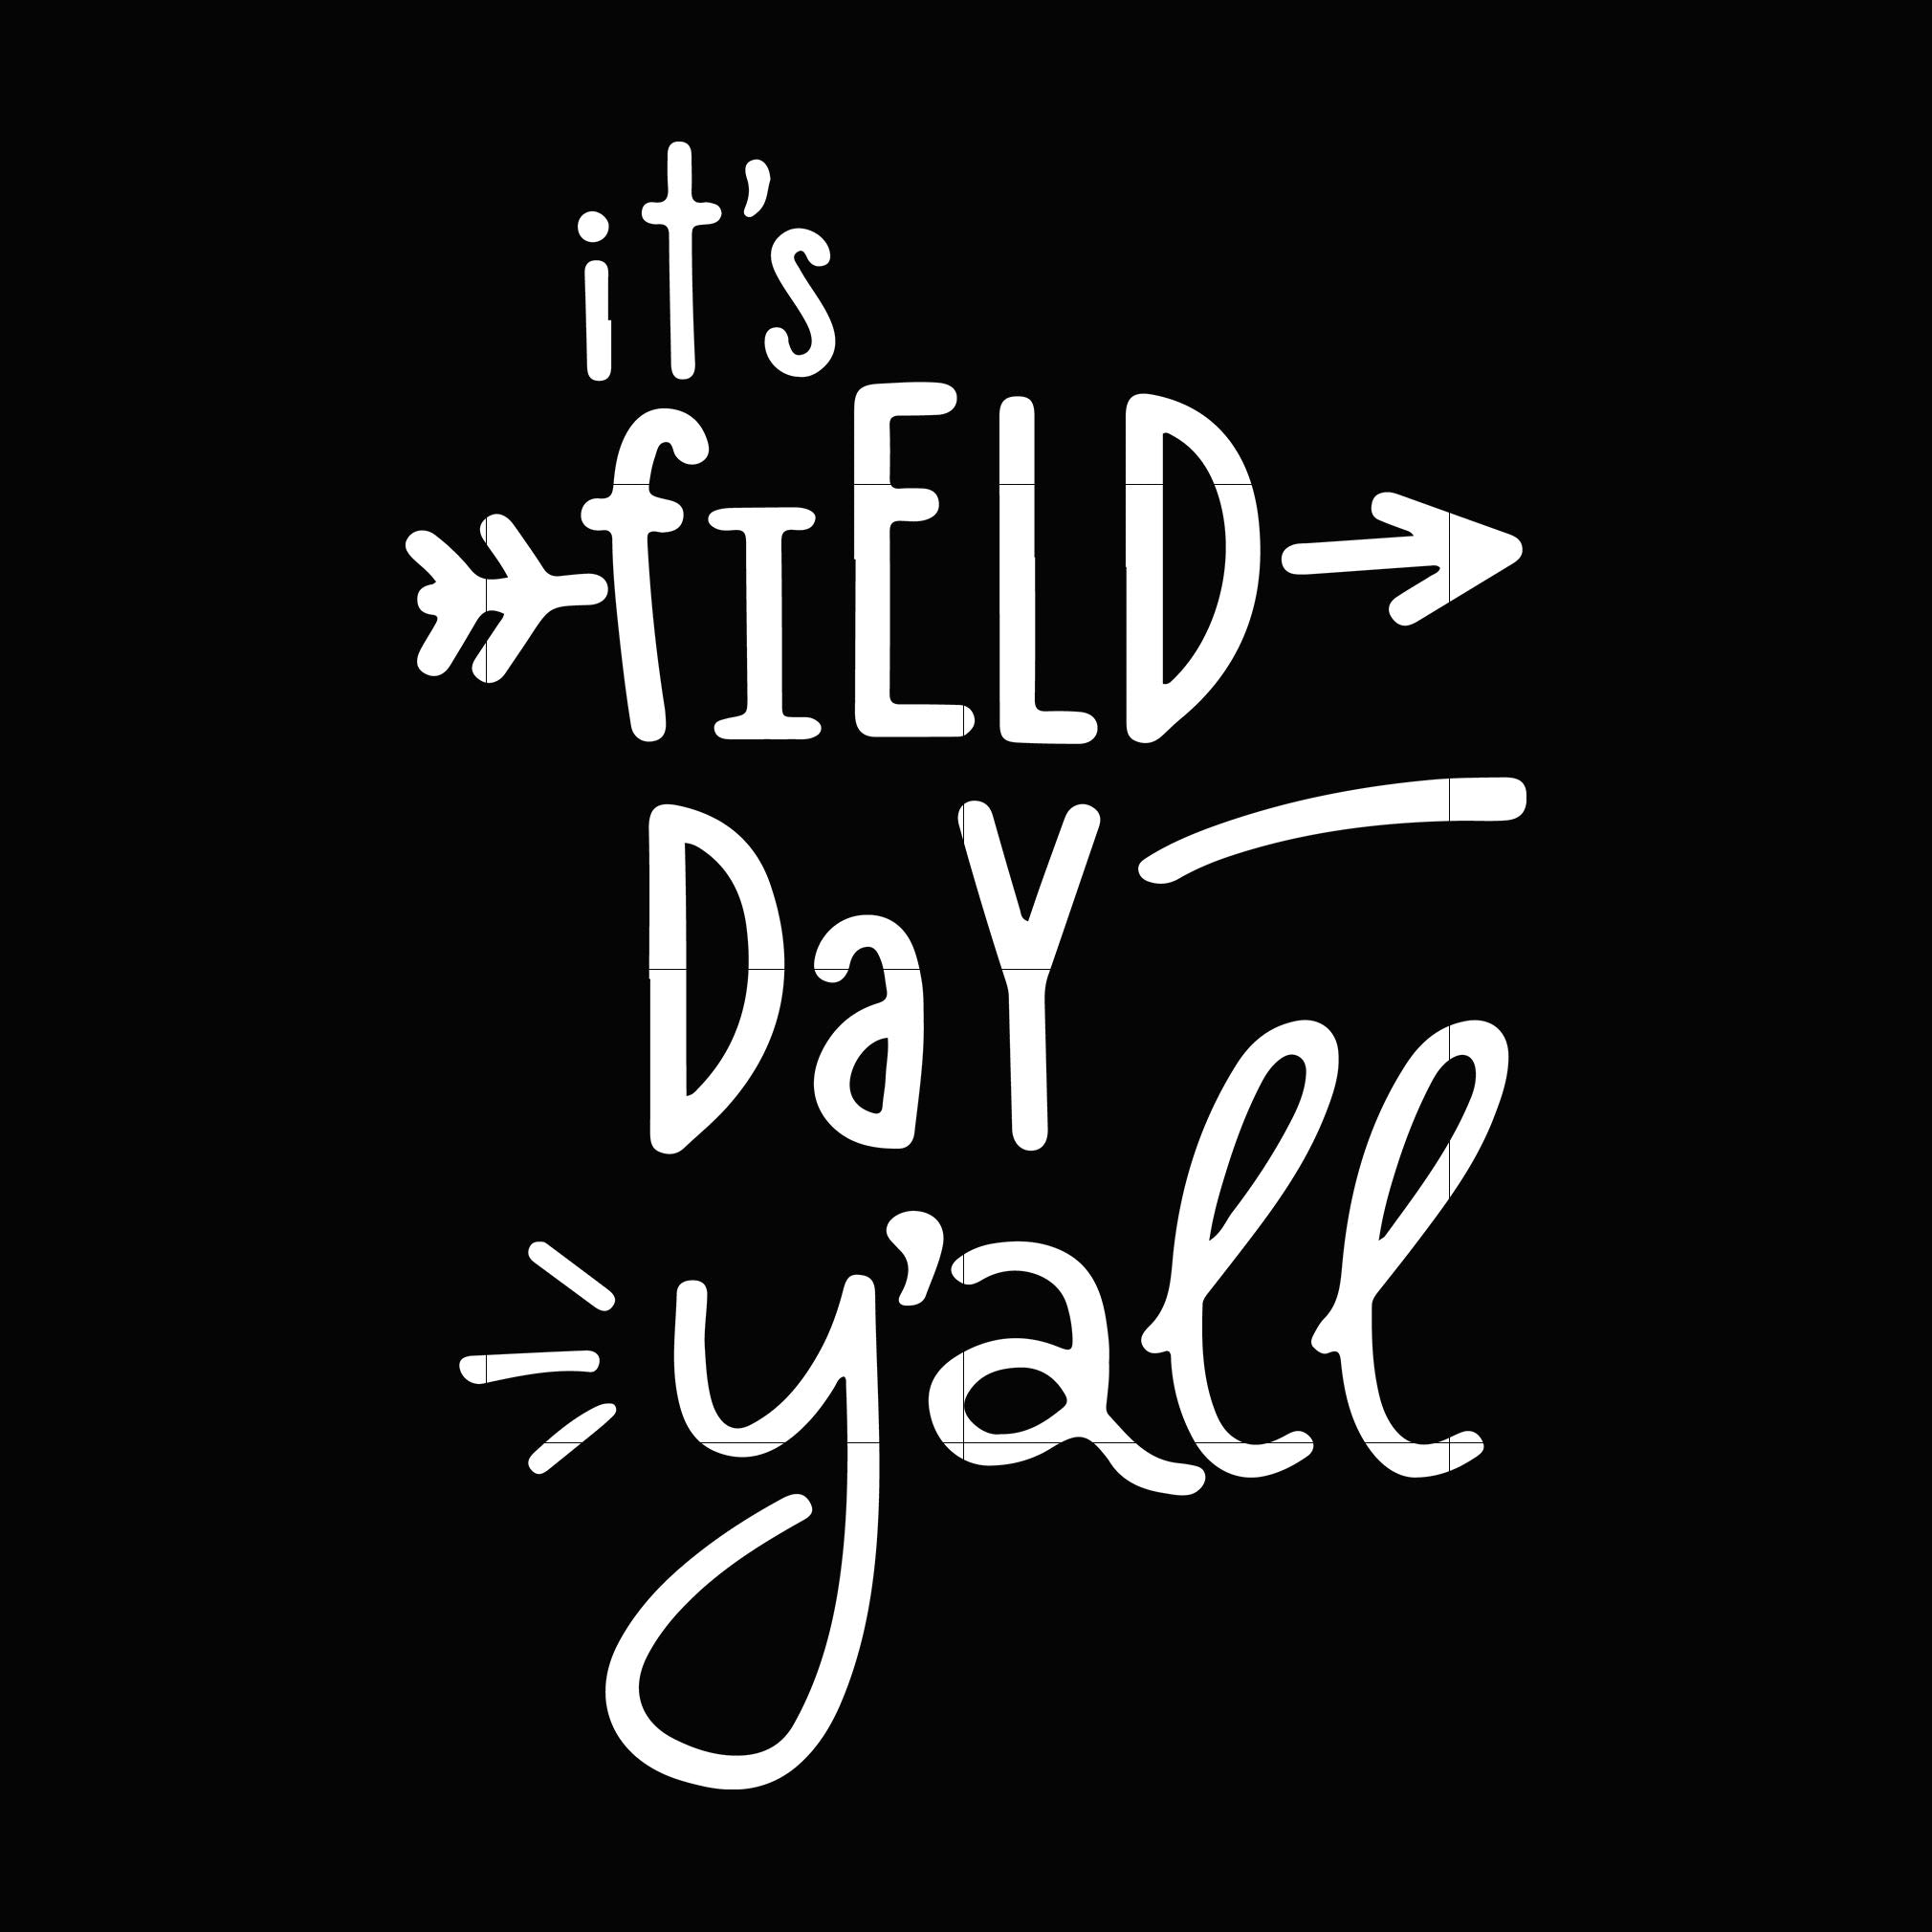 It's field day y'all svg,dxf,eps,png digital file